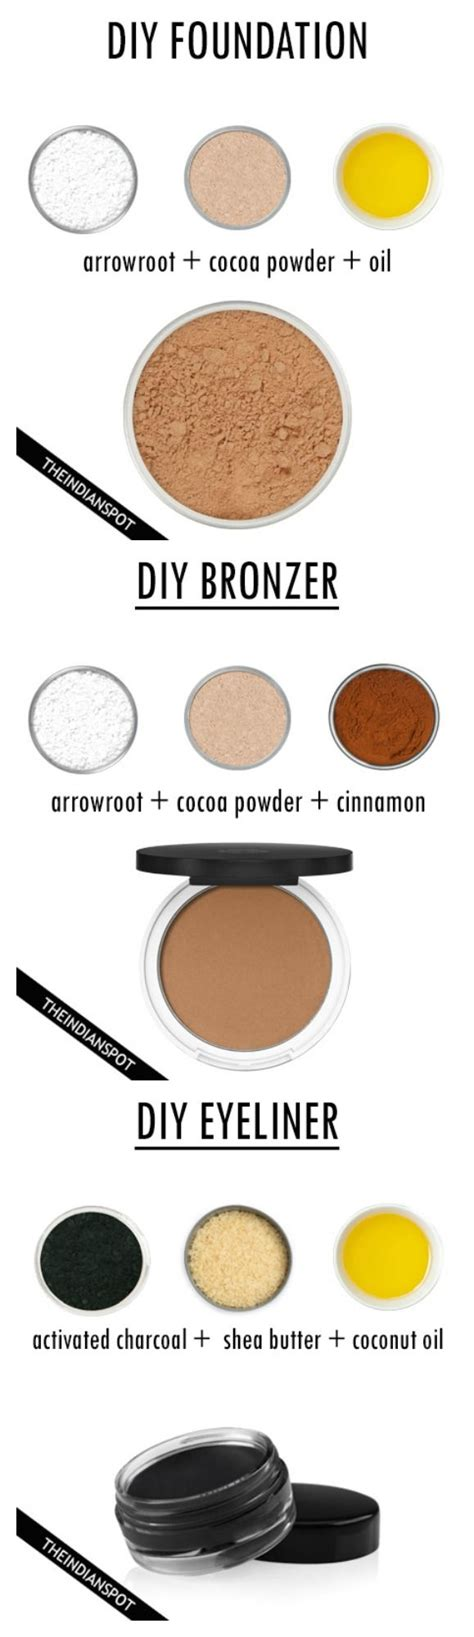 diy makeup 17 best ideas about diy makeup on